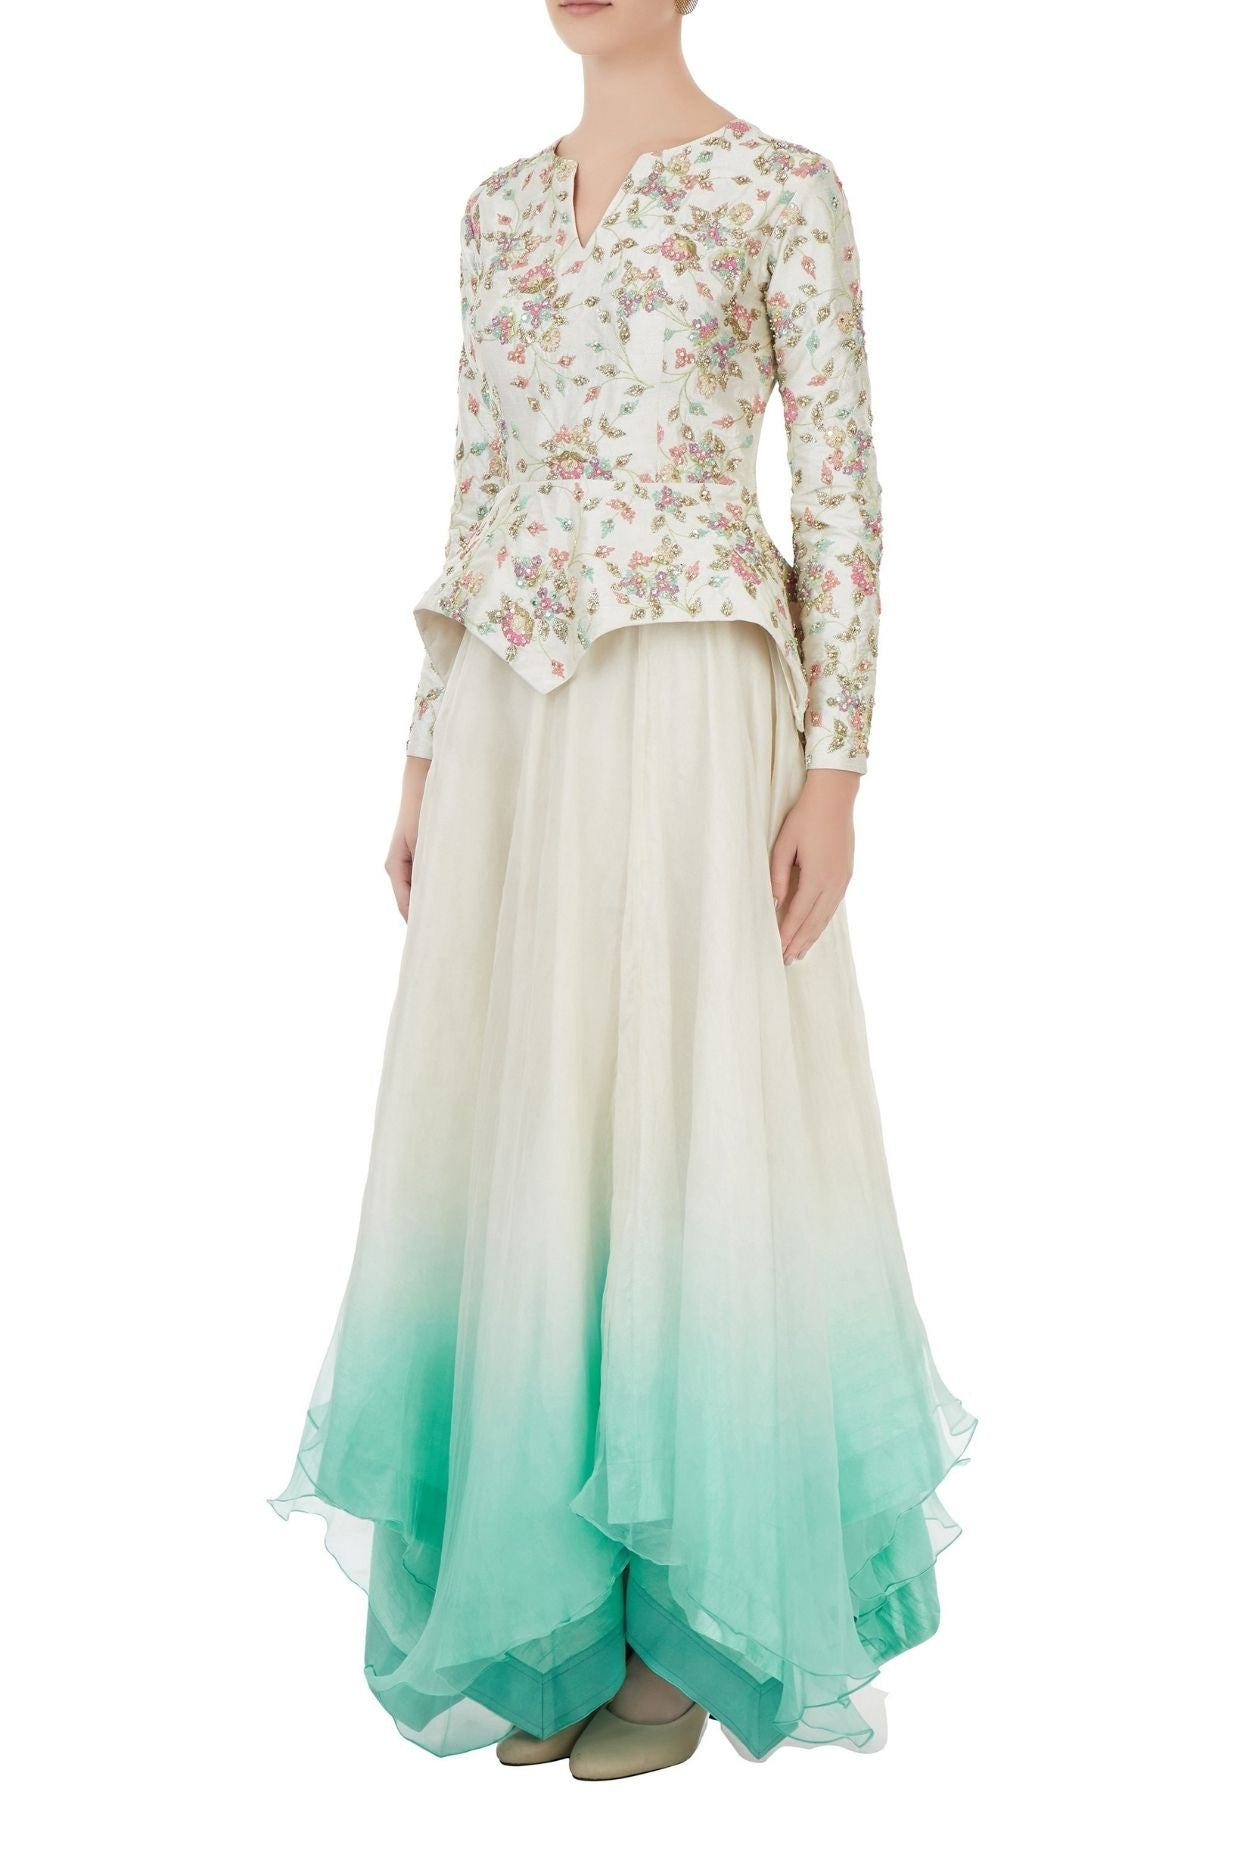 Ivory embroidered Peplum top and Ombre full Skirt